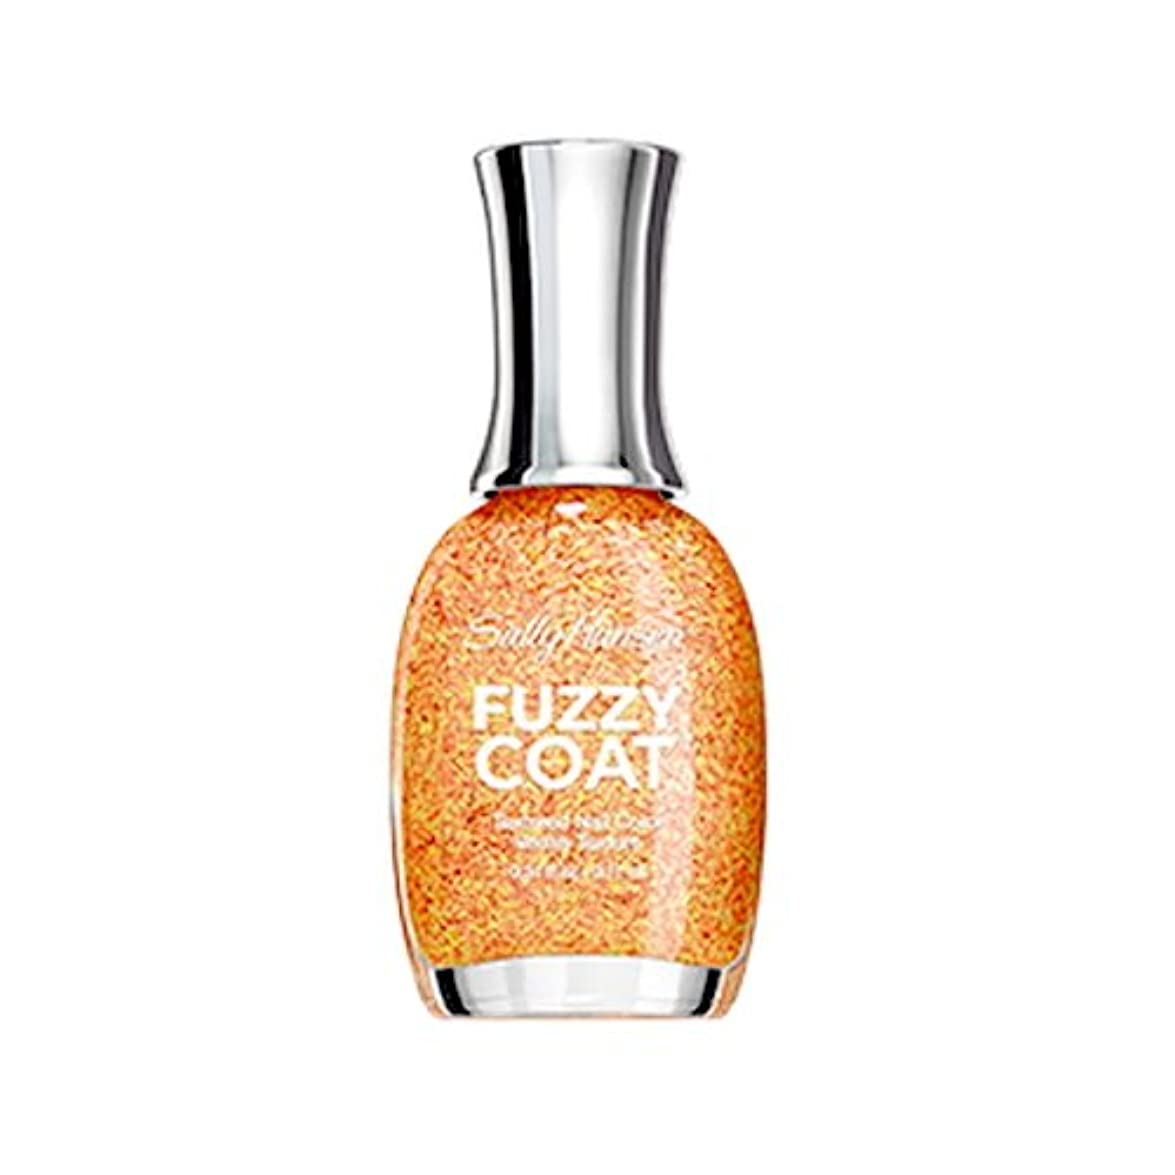 (6 Pack) SALLY HANSEN Fuzzy Coat Special Effect Textured Nail Color - Peach Fuzz (並行輸入品)